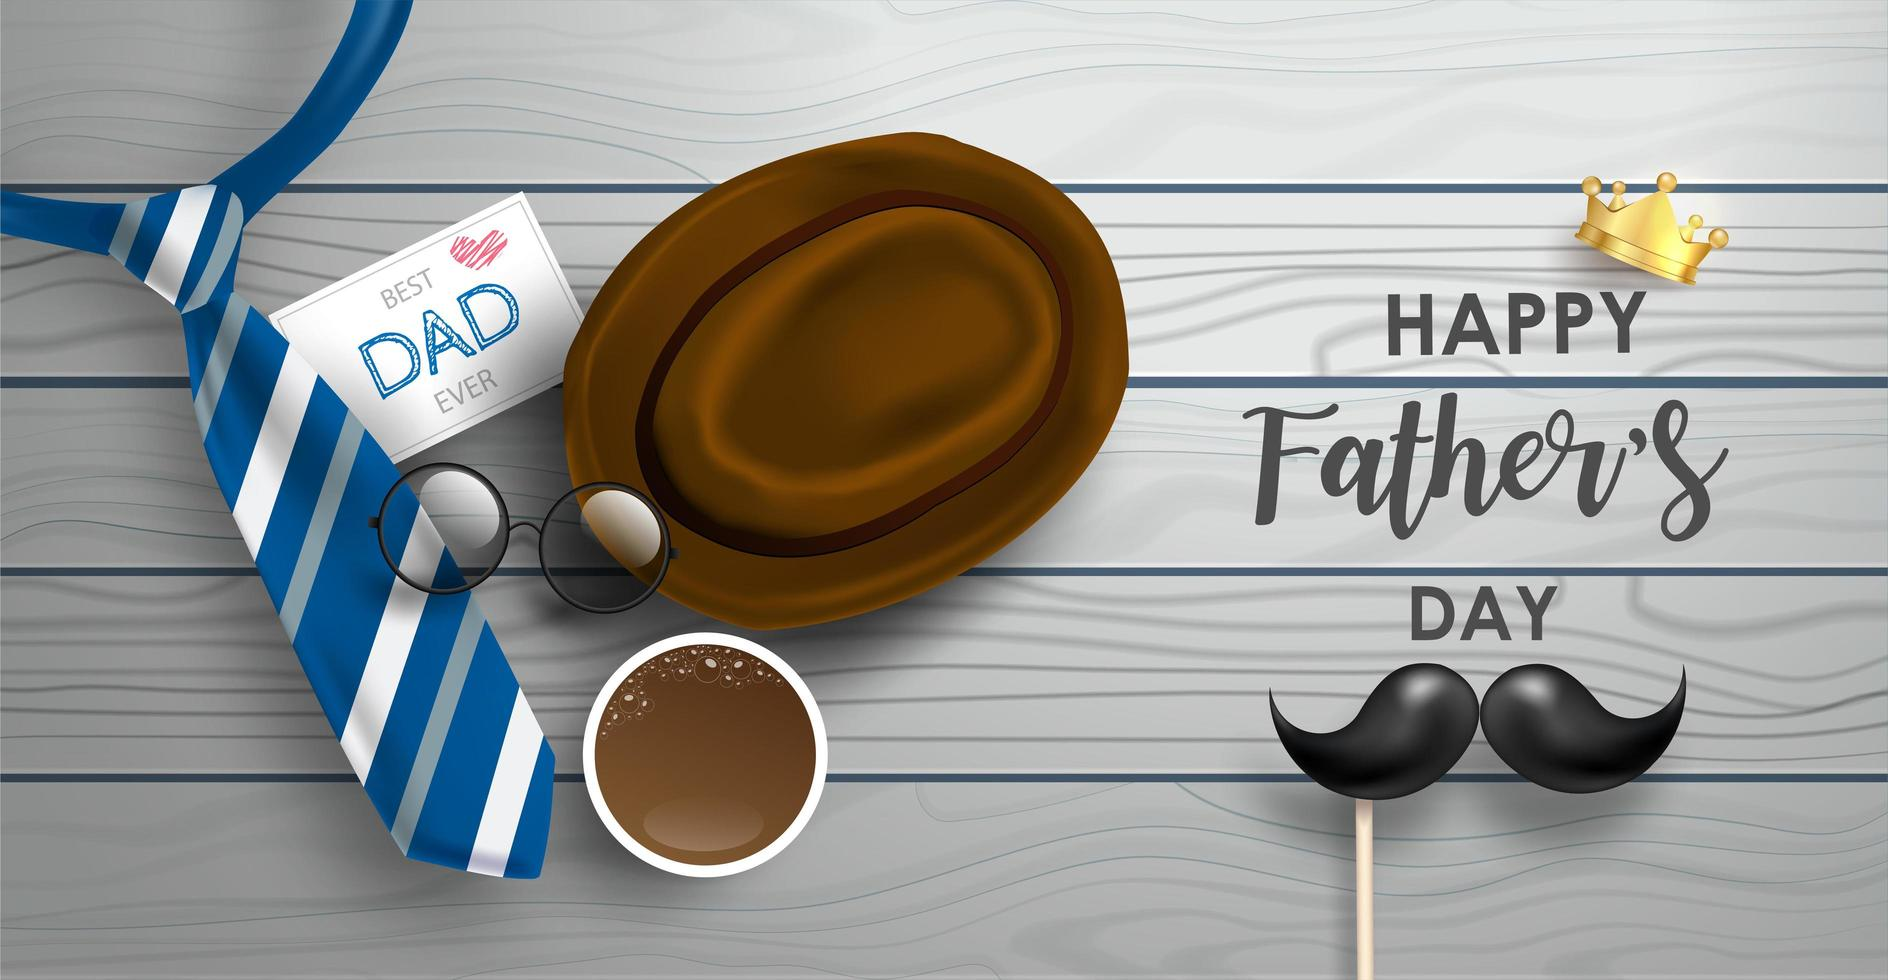 Happy Father's Day poster or background vector